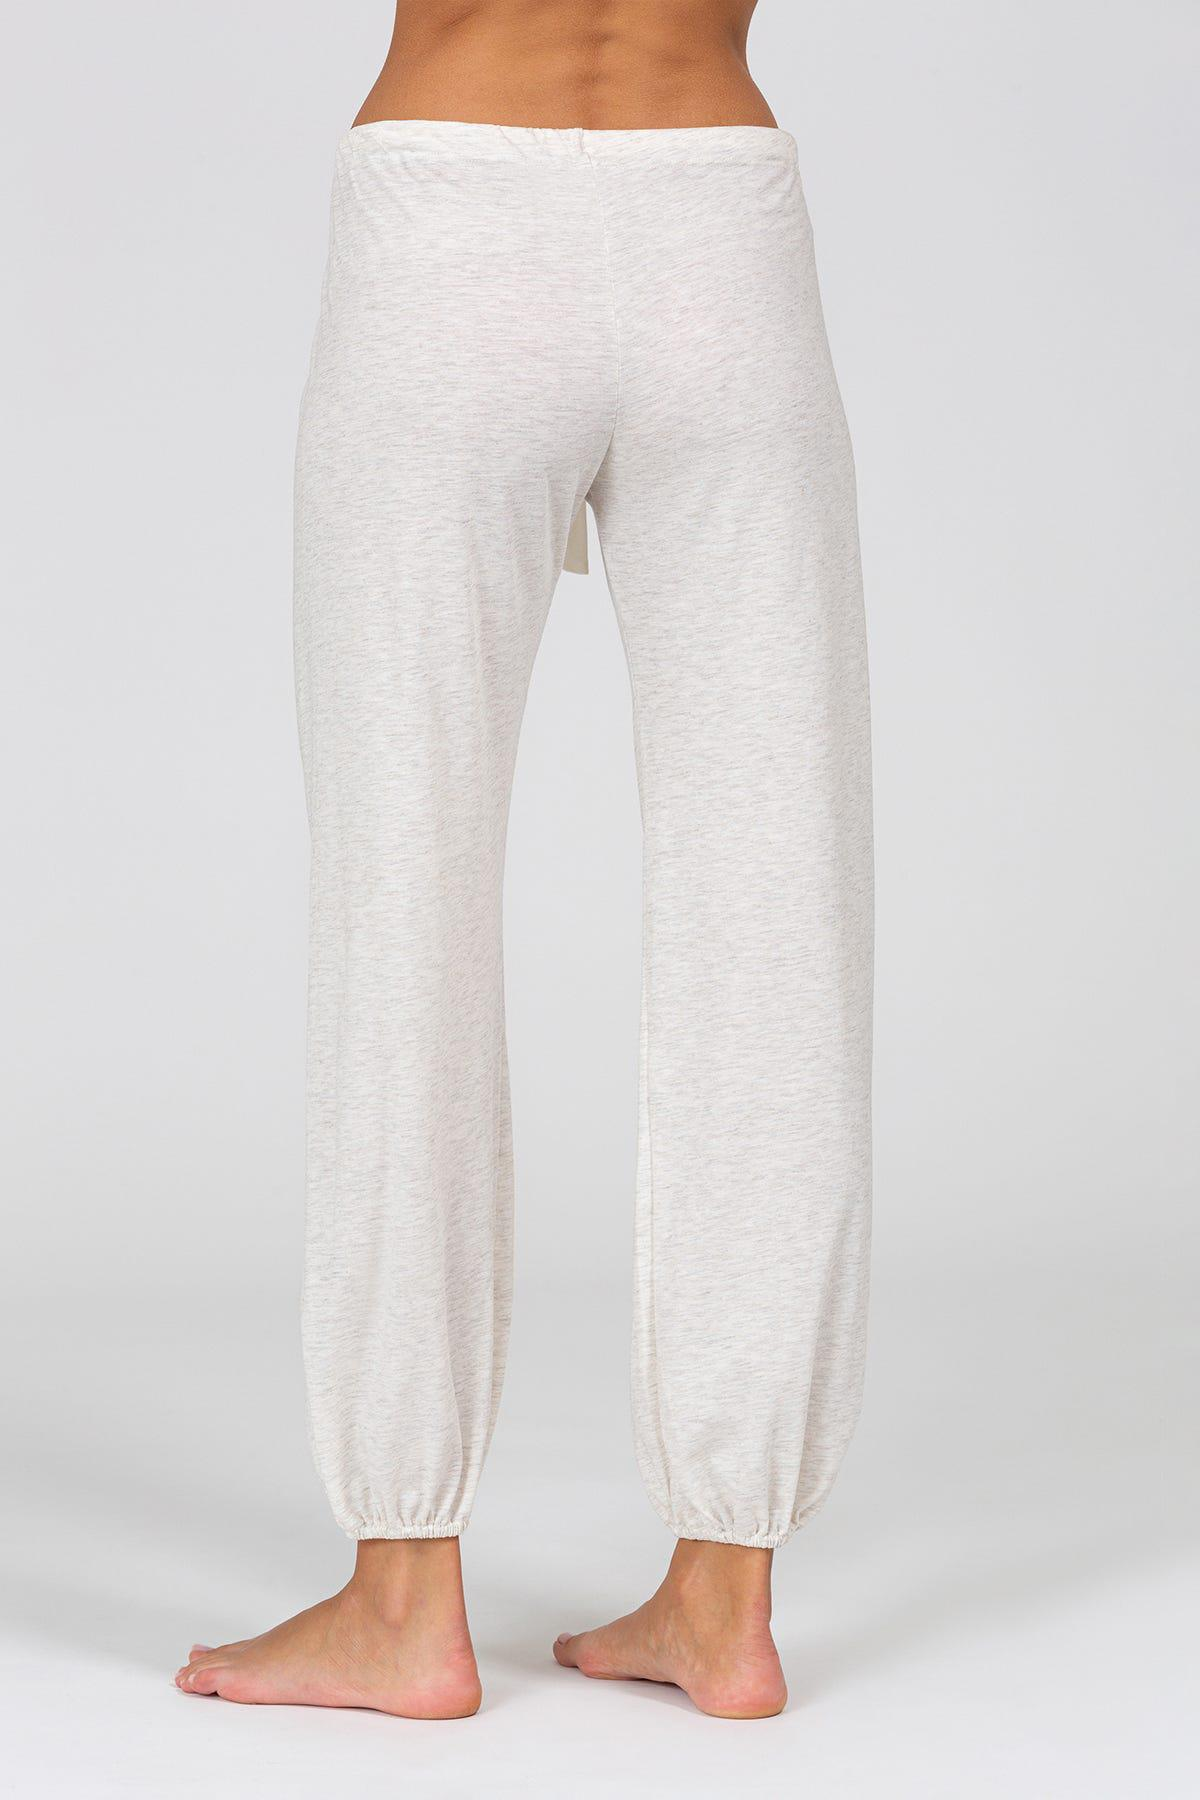 Heather Cotton Blend Cropped Pant 1